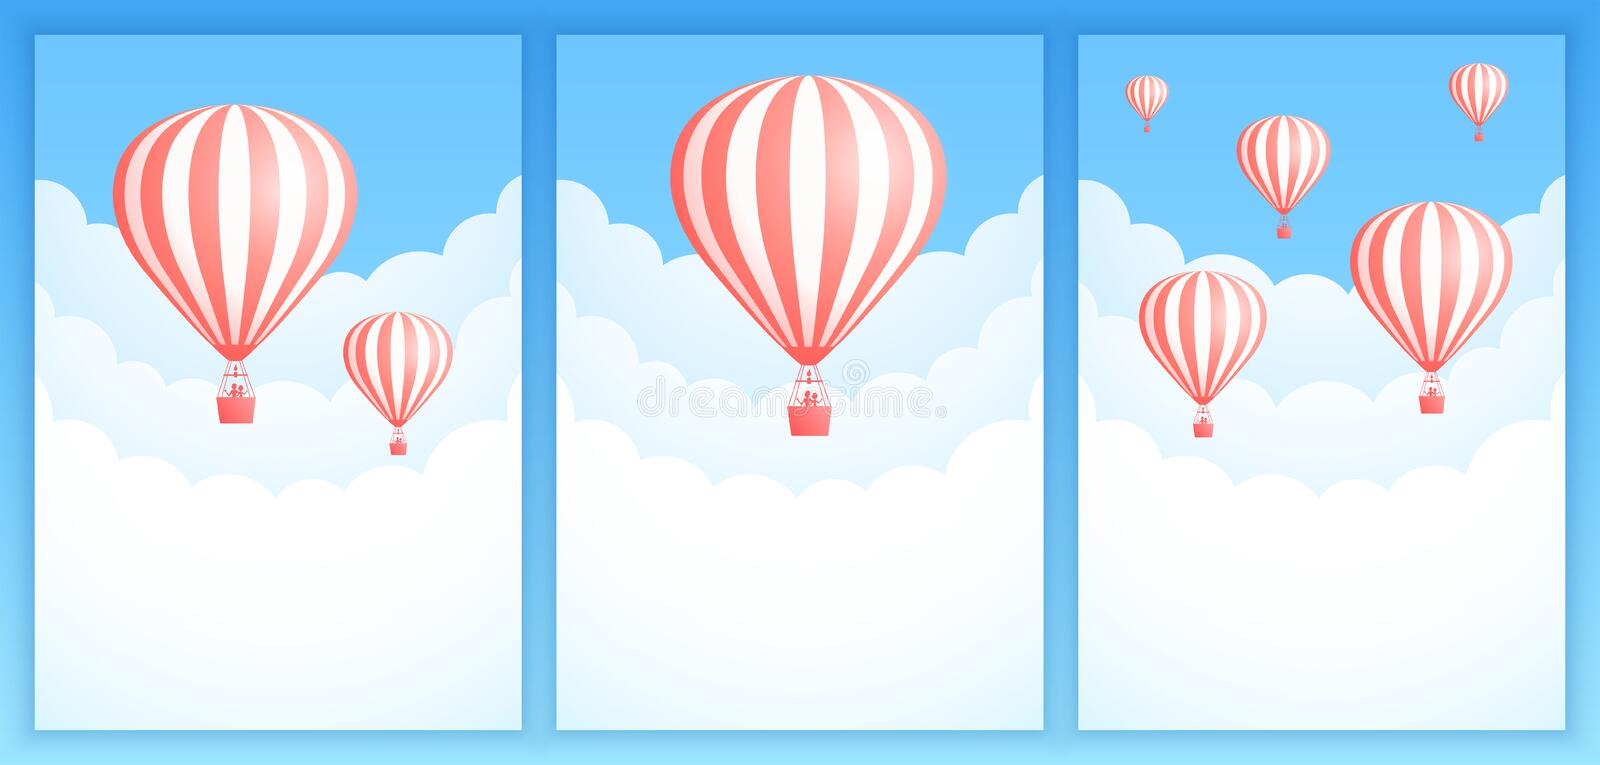 Hot air balloon cloud travel invitation banner. Hot air balloon cloud travel vector illustration. Set of sky art promotion banner templates with colorful striped stock illustration